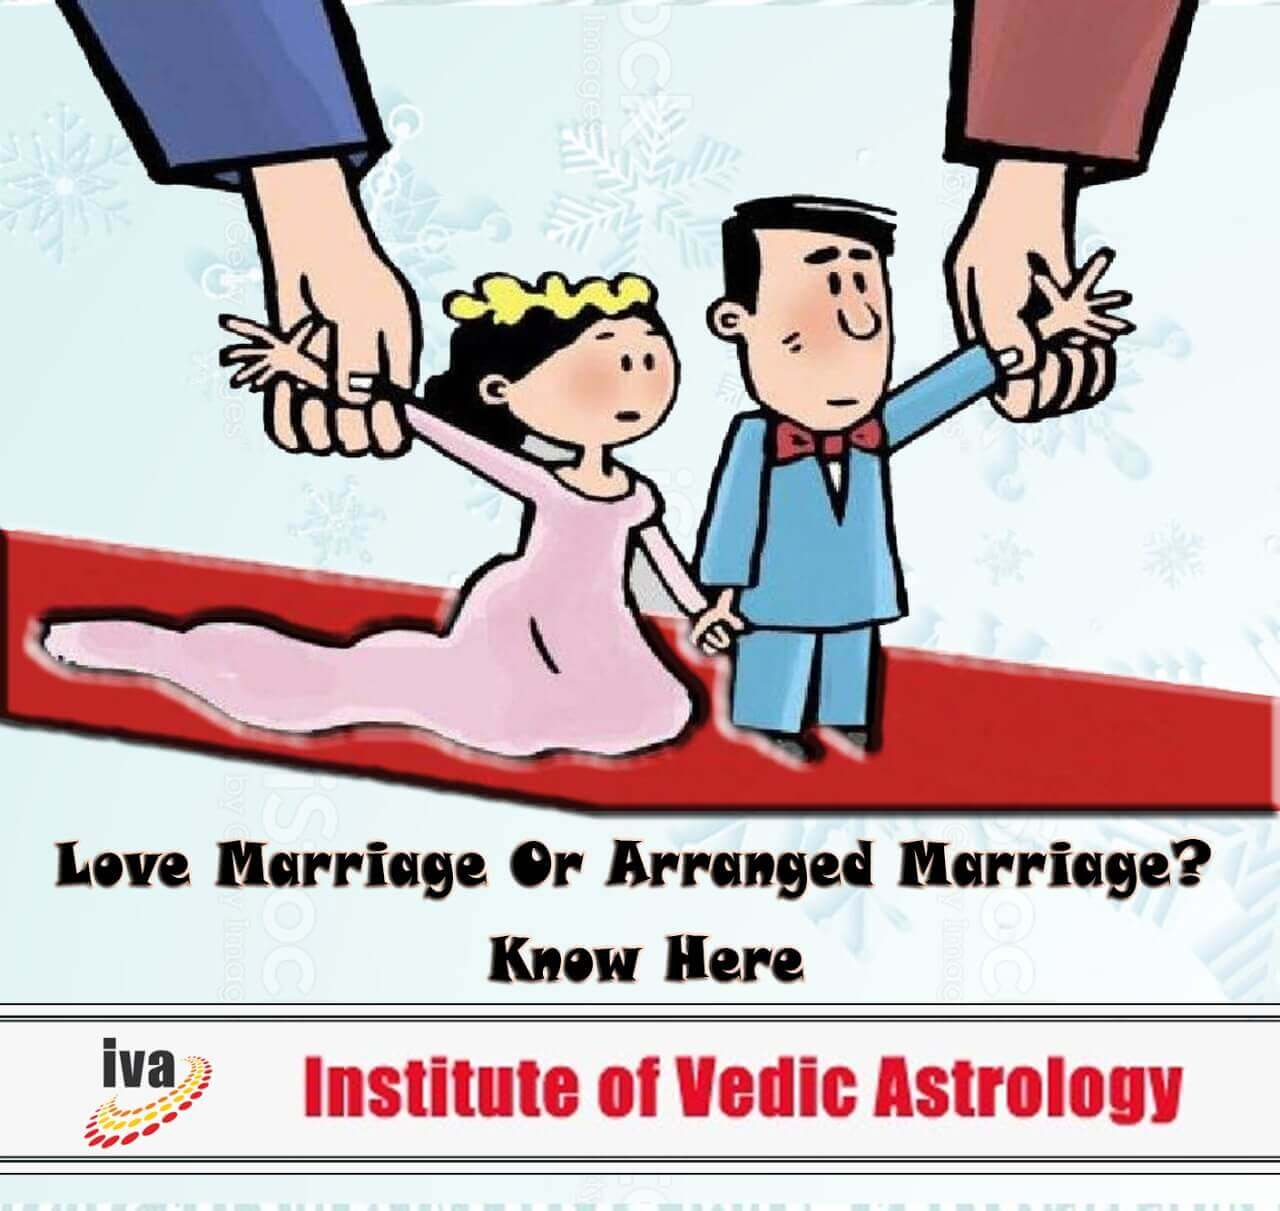 Love Marriage or Arranged Marriage? Know here